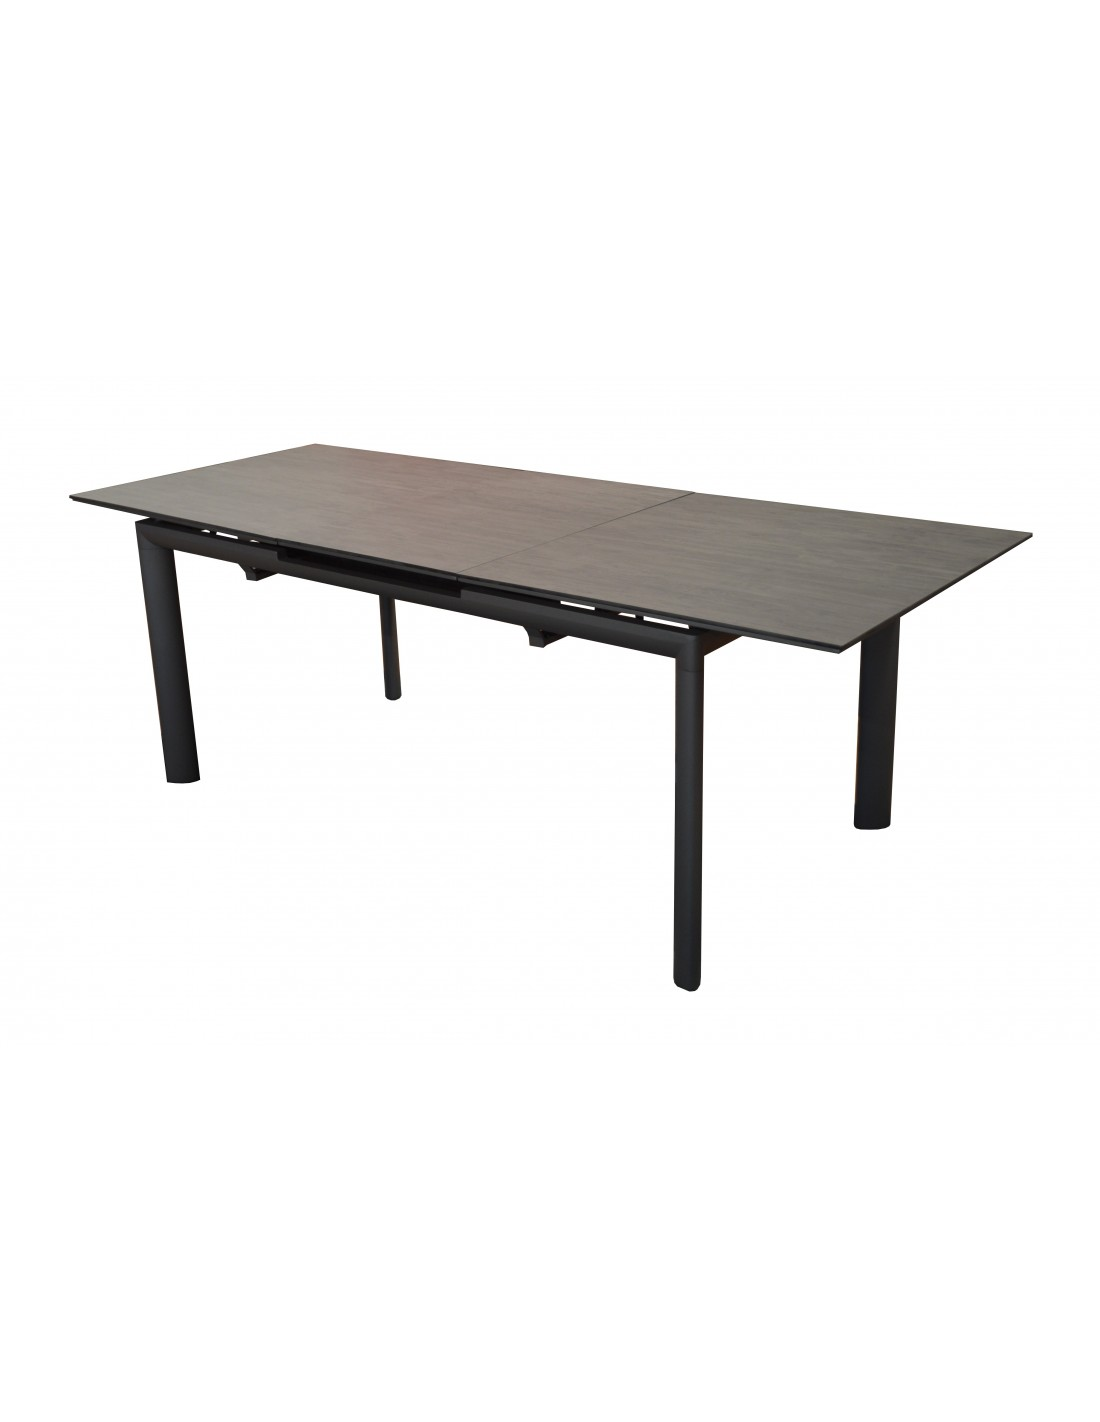 Table de jardin extensible hpl 84 images hegoa table for Table extensible resine